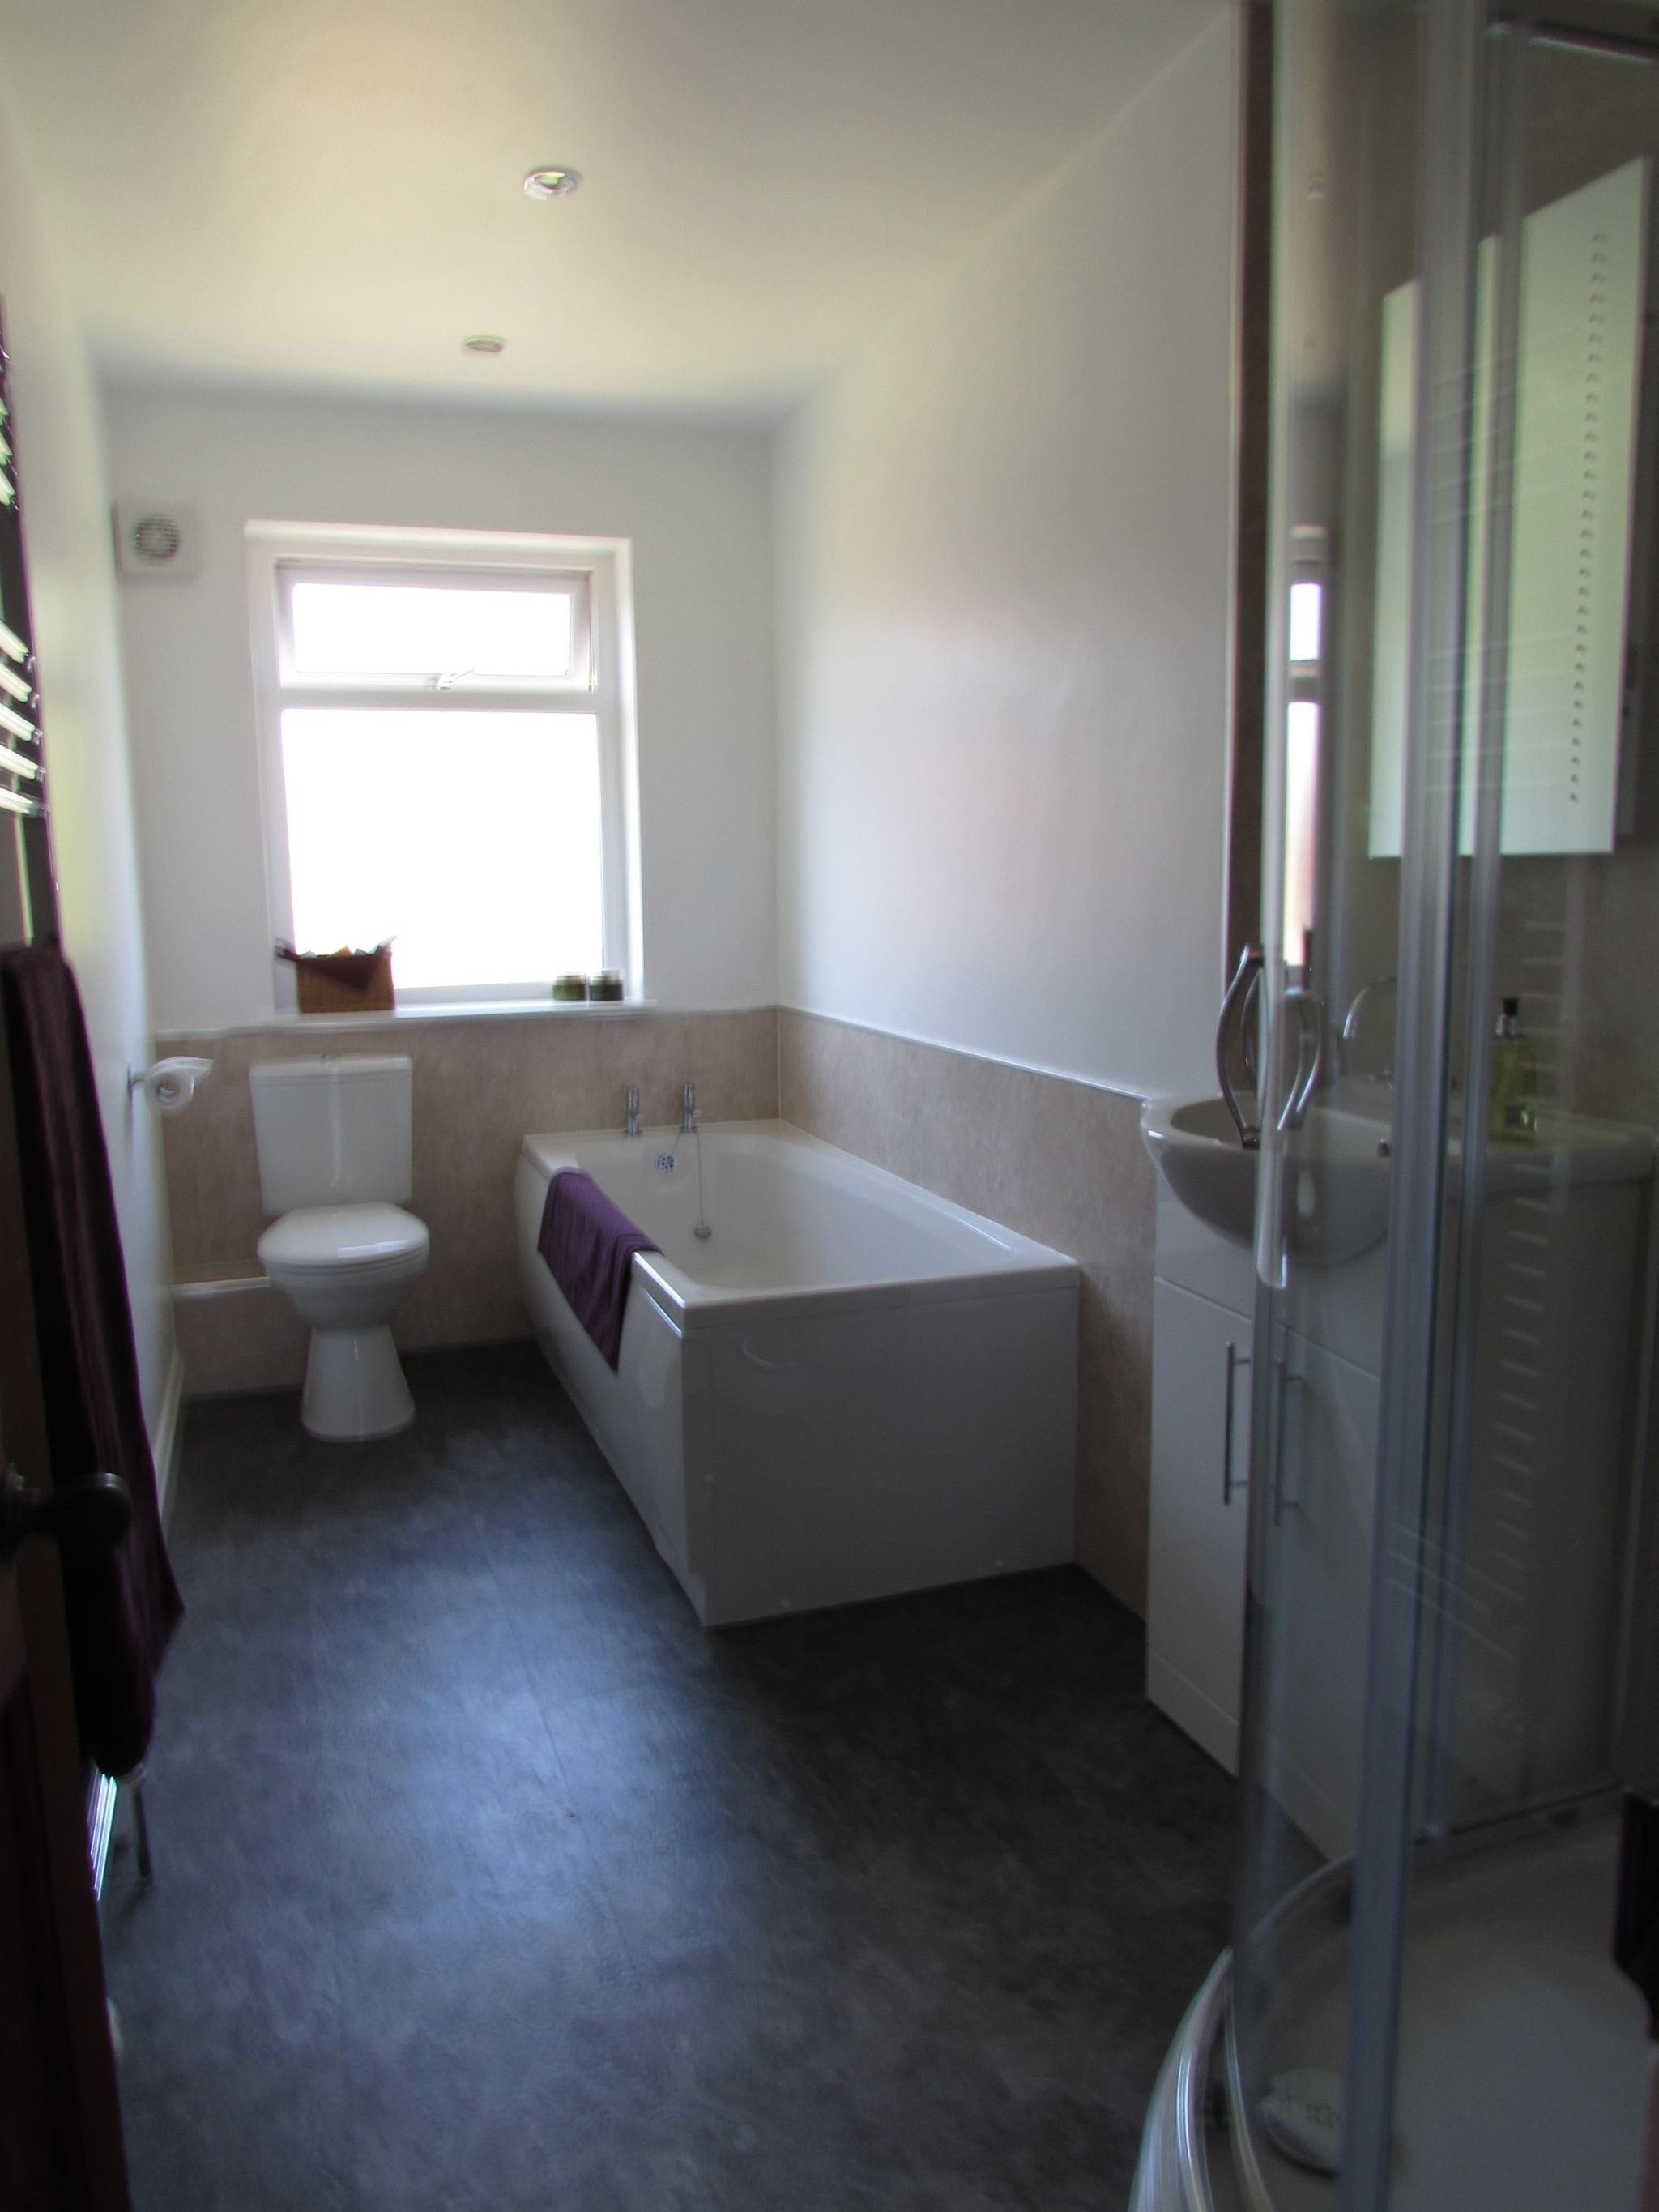 3 Bedroom Semi-detached House For Sale - Photograph 13